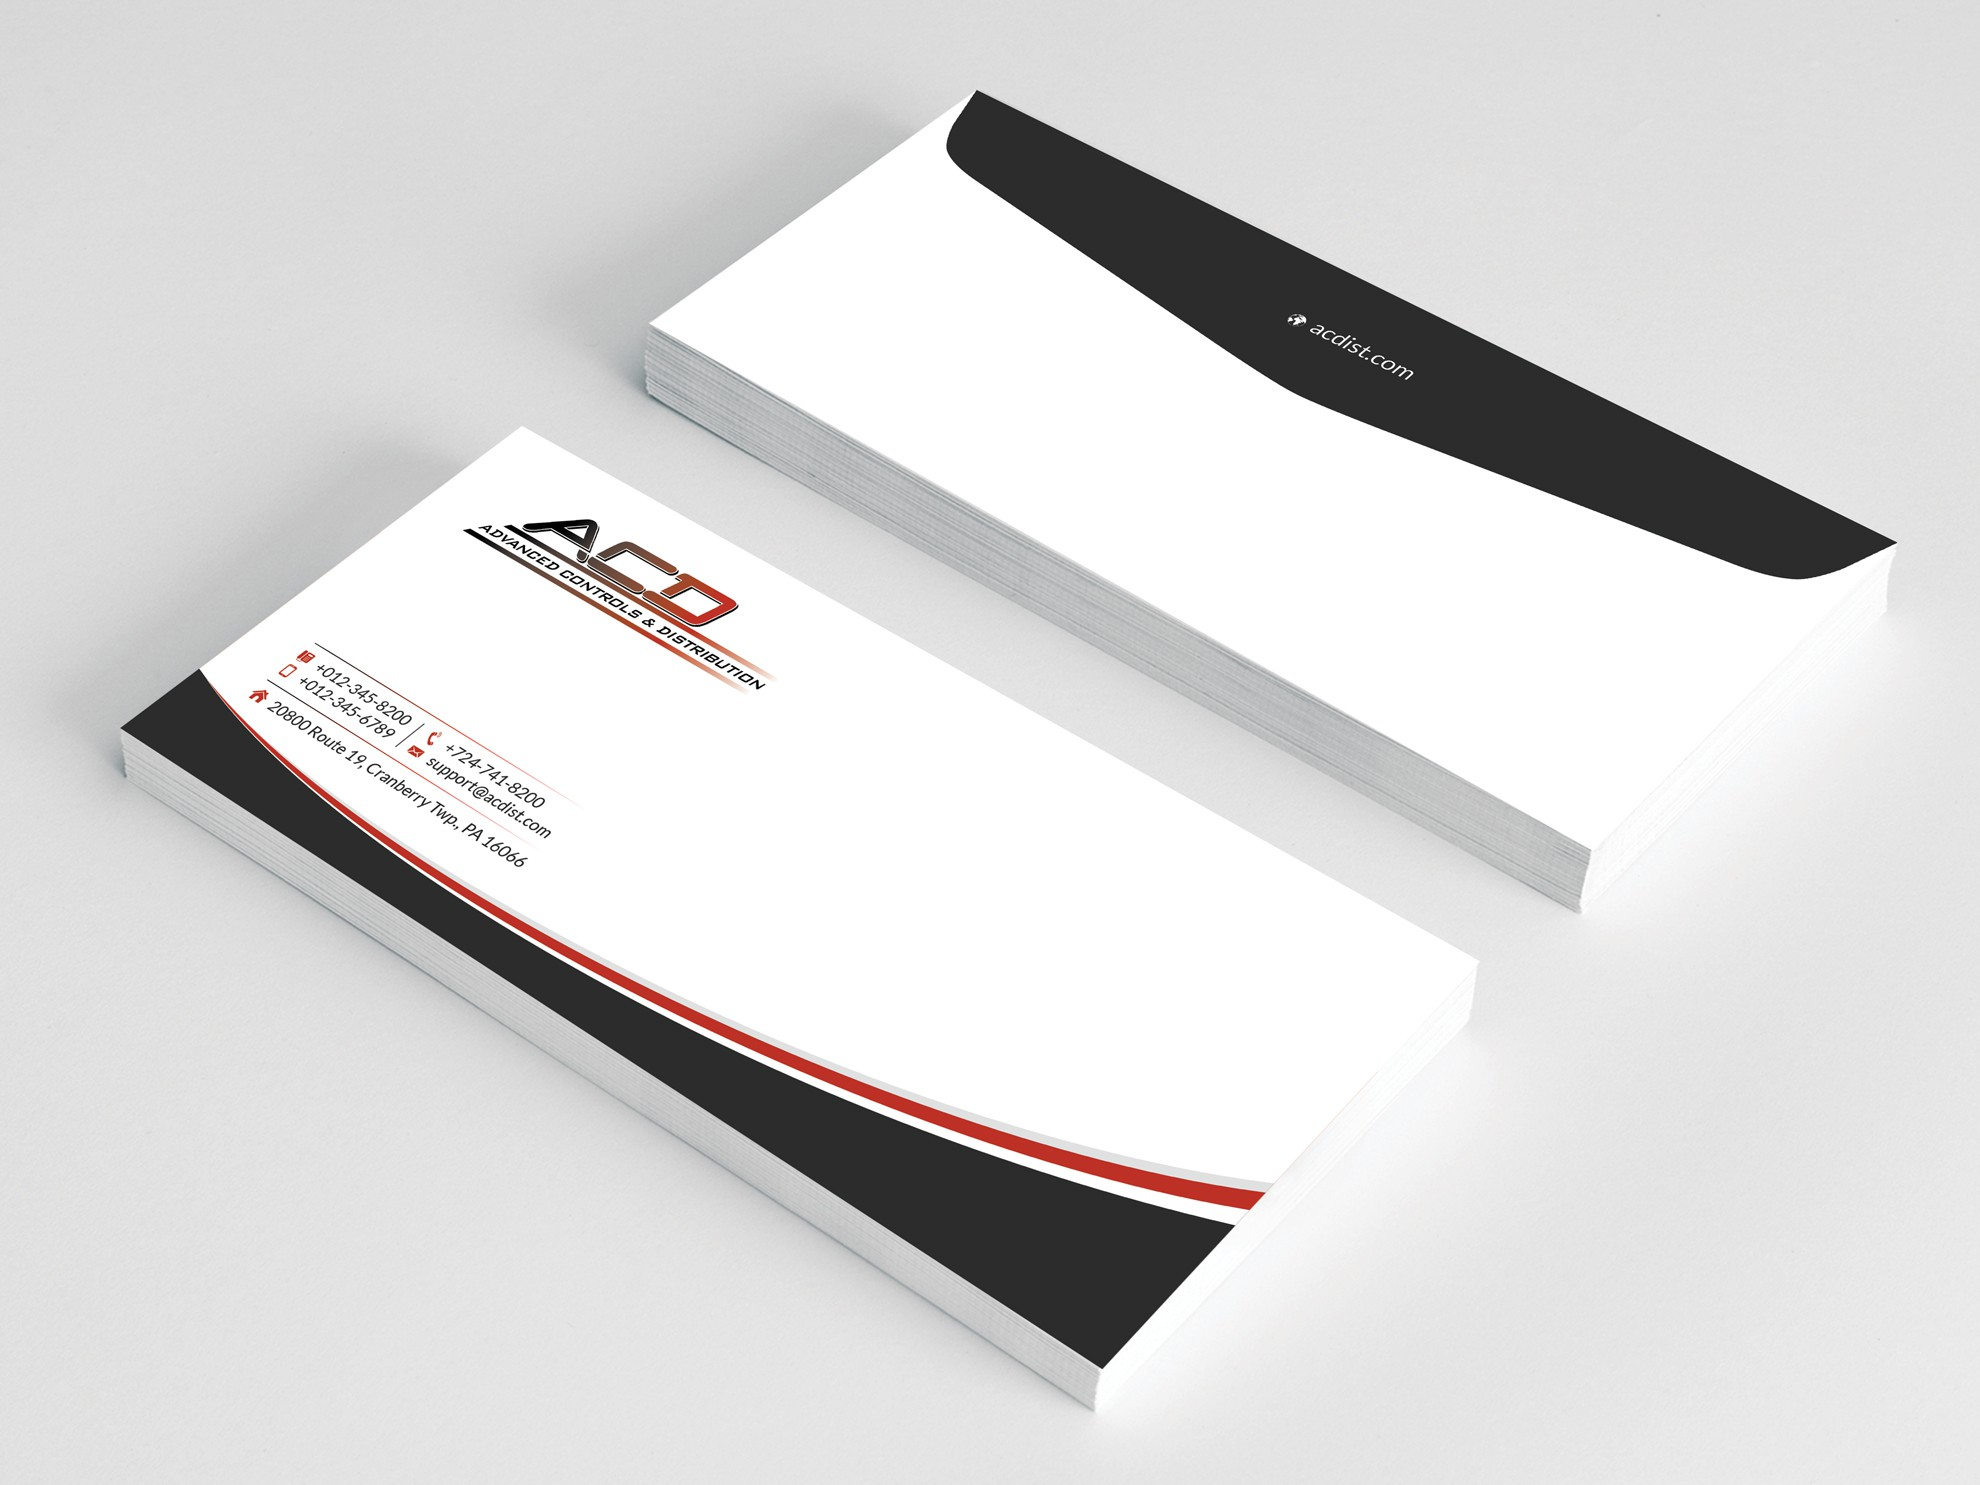 Create industrial yet innovative/modern business card/letterhead for industrial distributor.